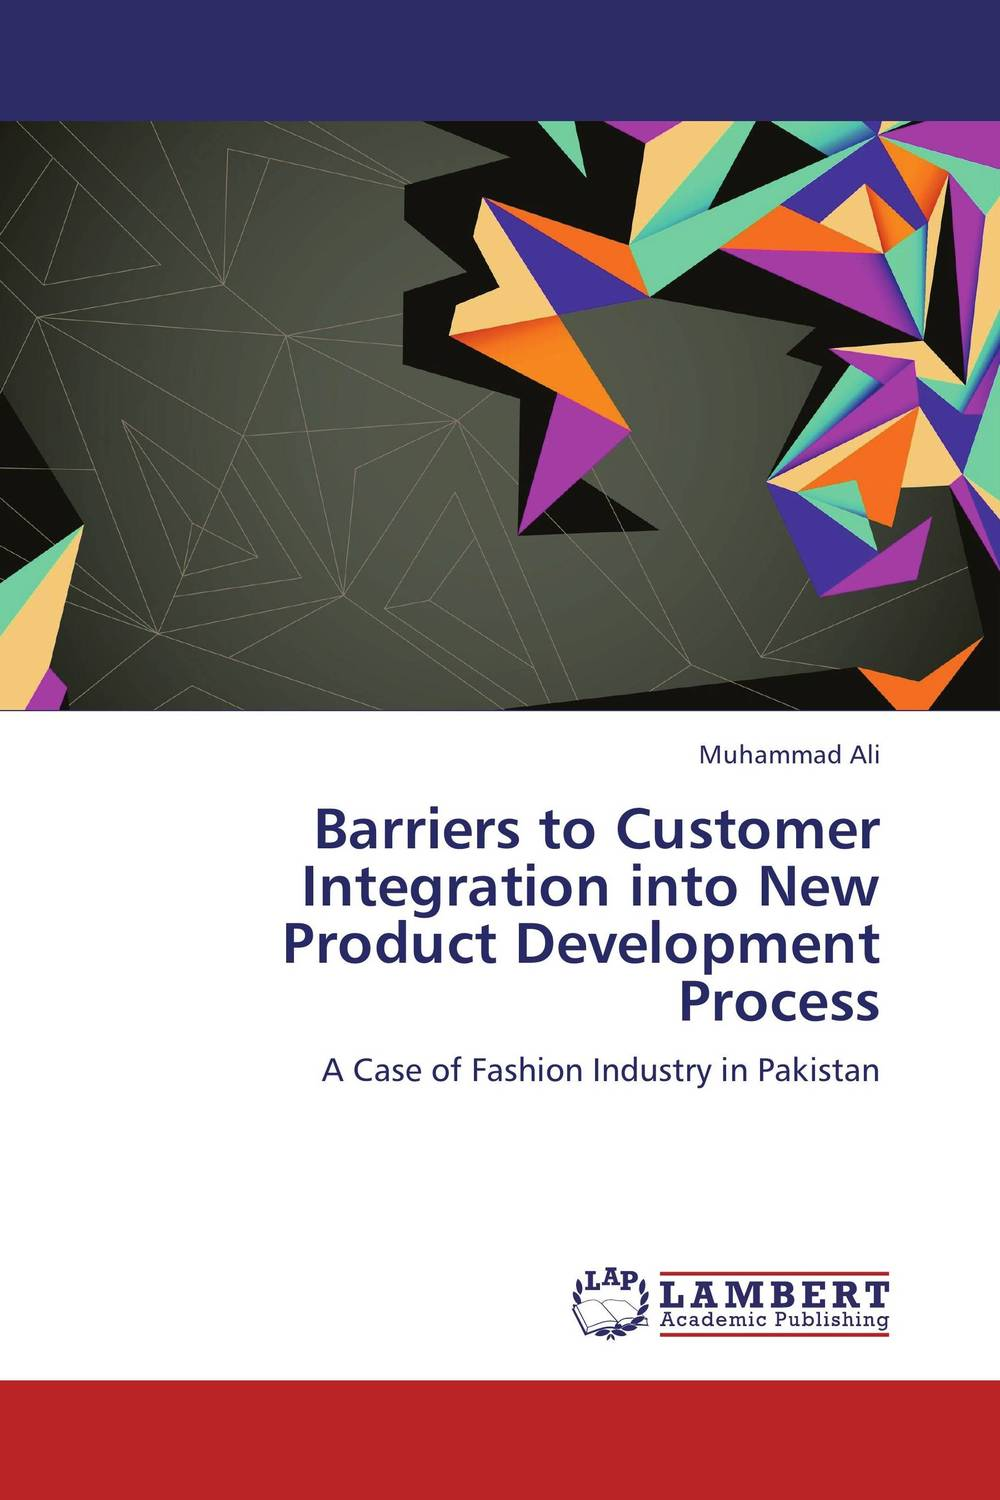 Barriers to Customer Integration into New Product Development Process